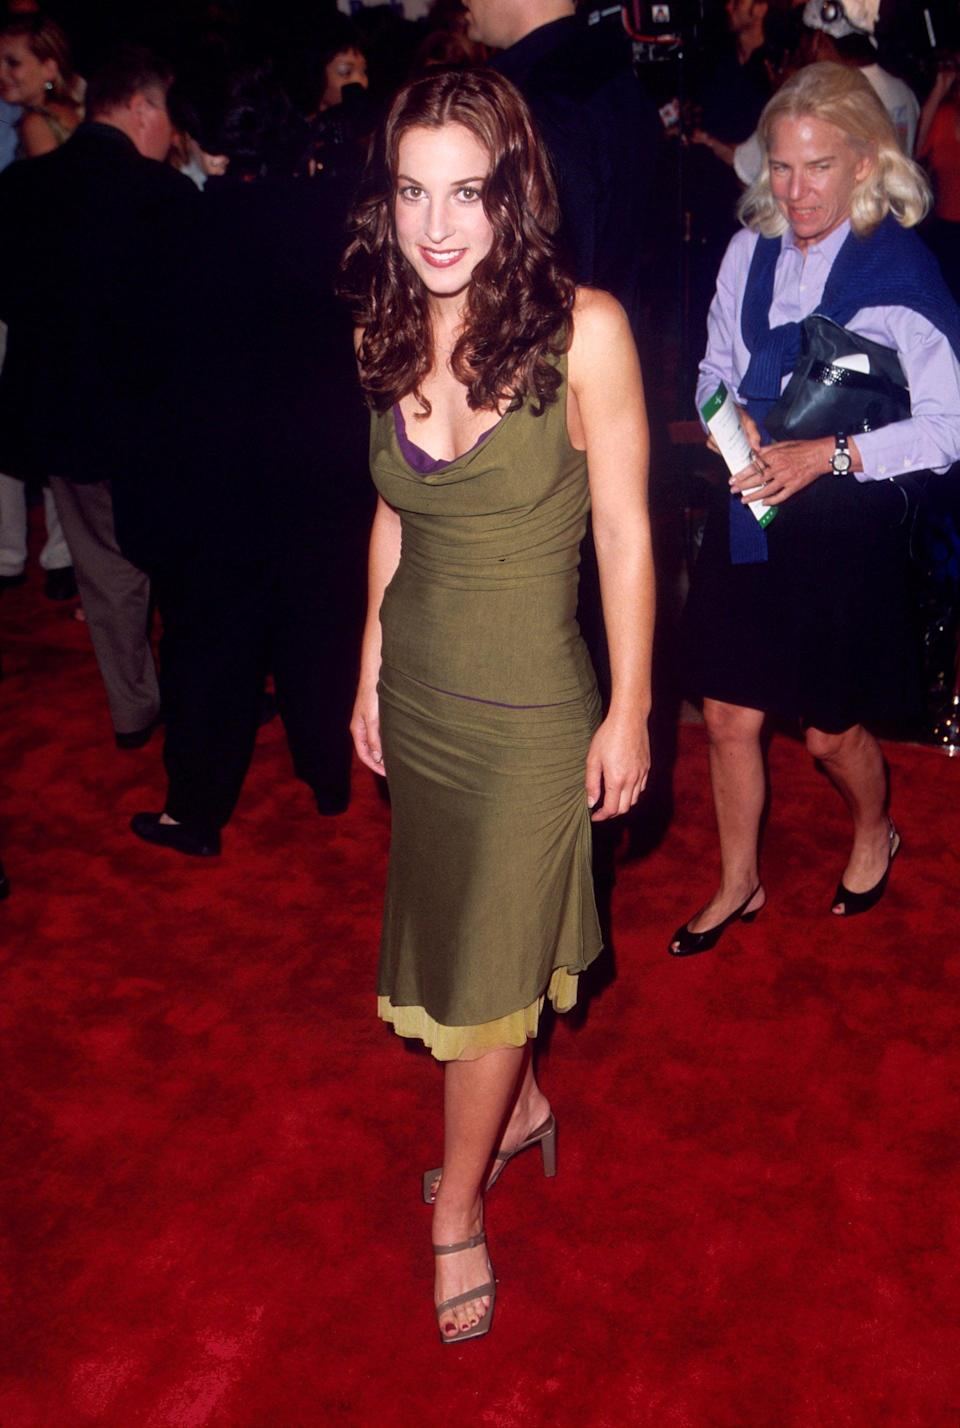 """<p>""""Big Red"""" arrived to the premiere in a slinky olive co-ord set that she wore with taupe, square-toed sandals. The neutrals might not have been as bright as some of the other looks, but these silhouettes were prominent in the early 2000s.</p>"""